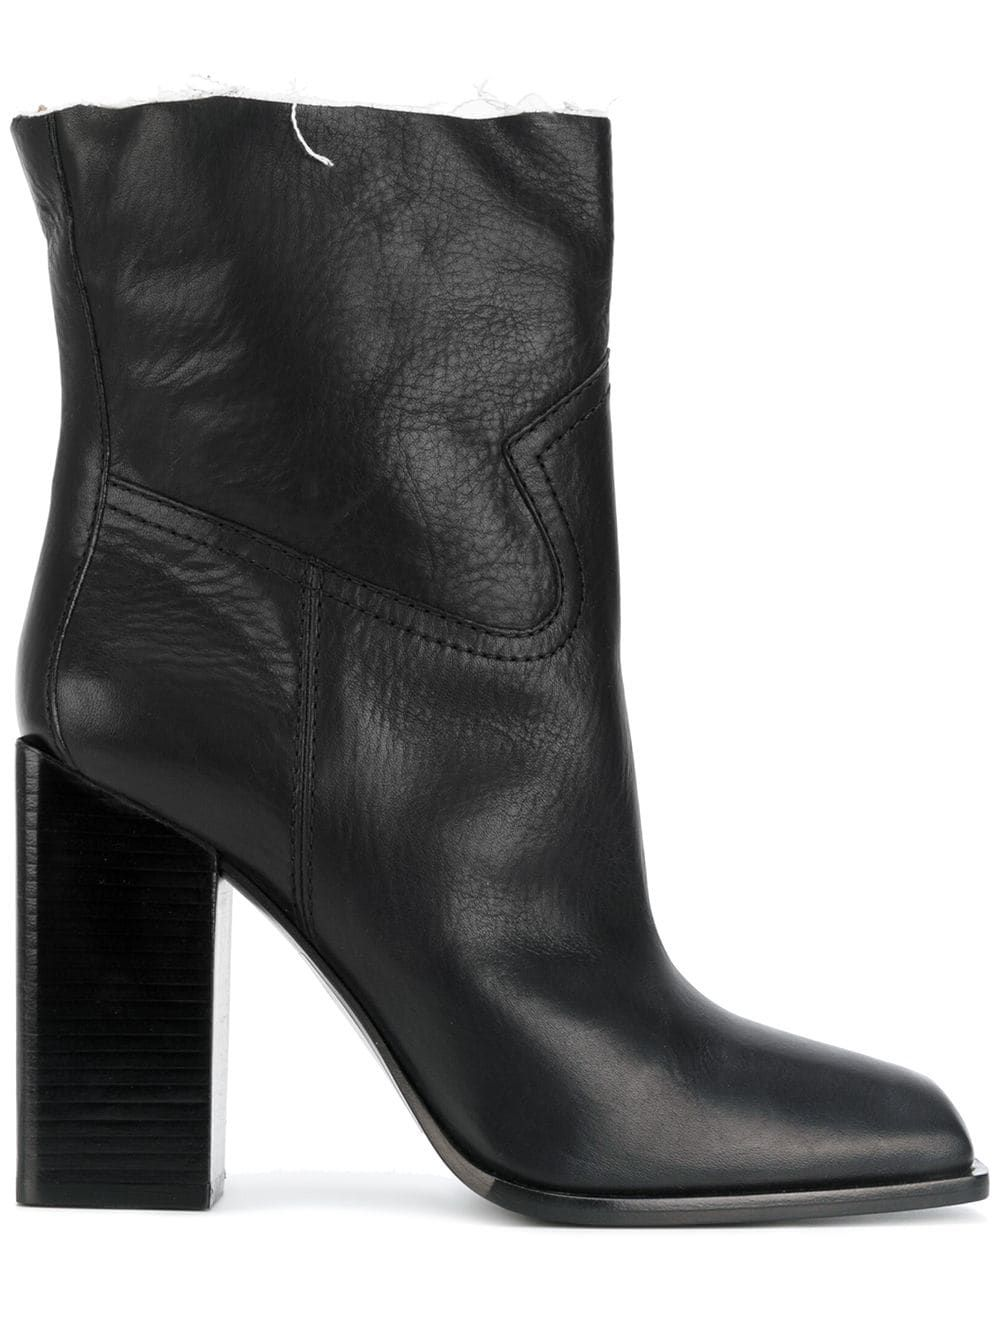 44dcacc8a82 Saint Laurent Jodie 105 Western ankle boots - Black in 2019 ...